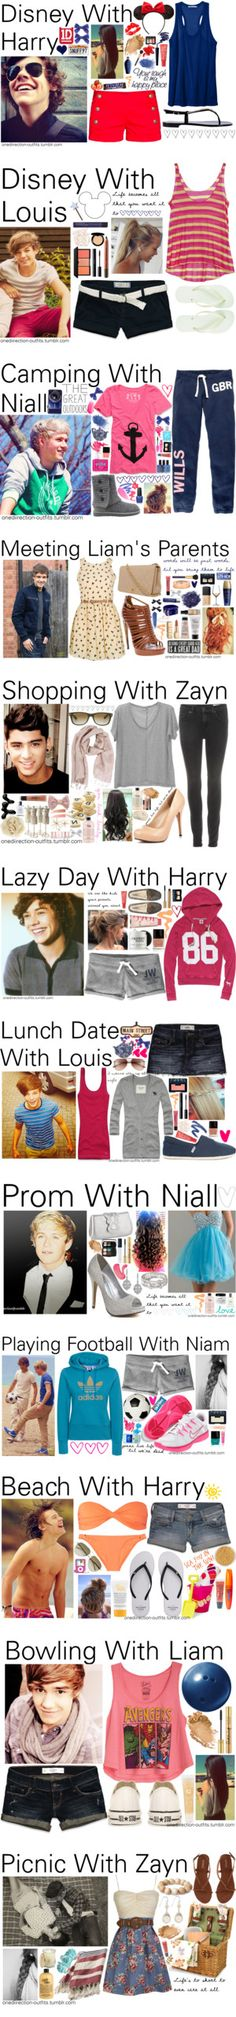 """One Direction Outfits 0 - 20 x"" by onedirection-outfits ❤ liked on Polyvore"